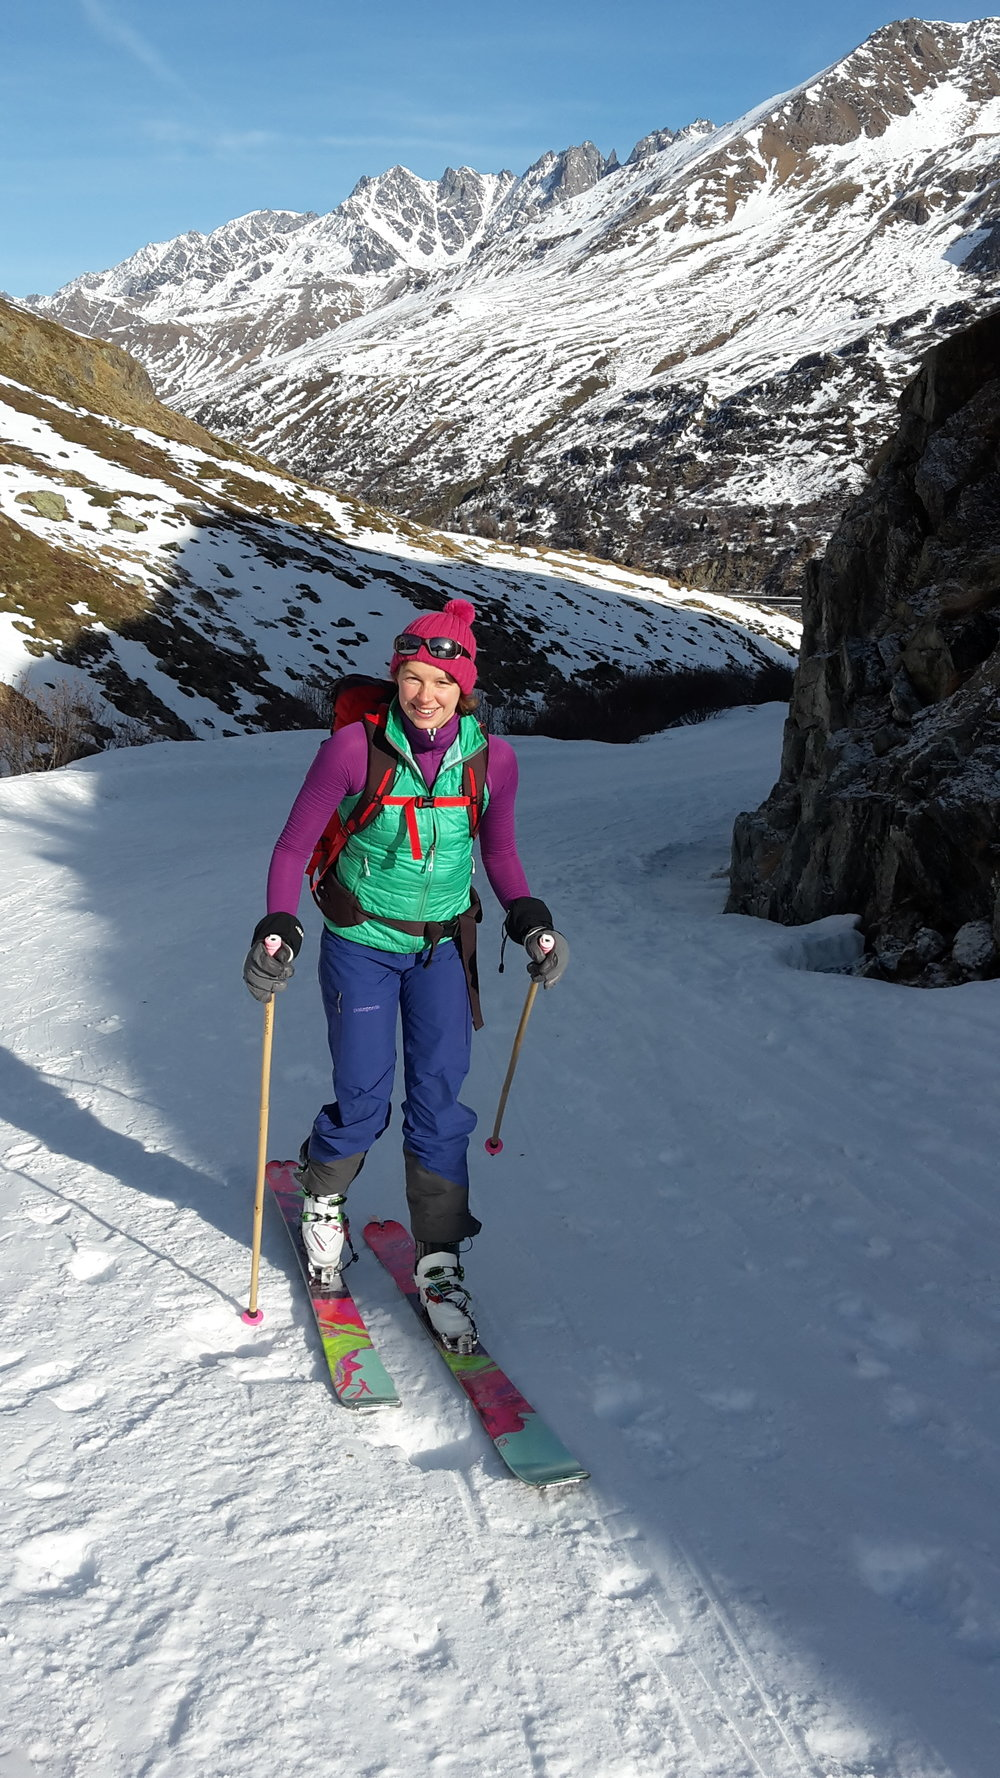 Lucy ski touring up to the St Bernard's Monastery